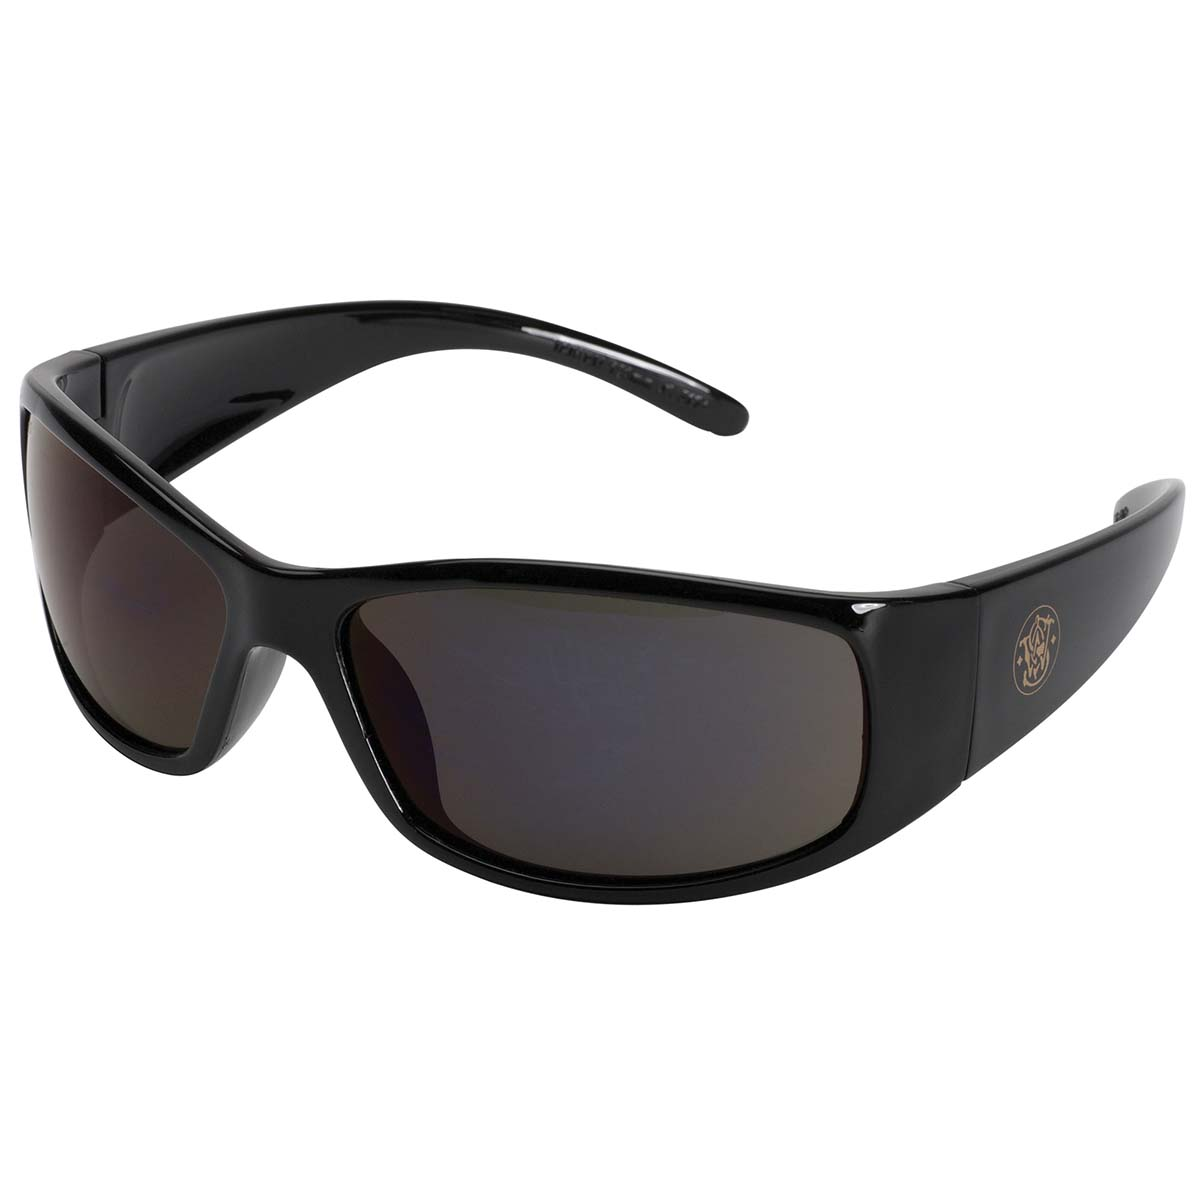 Smith and Wesson Safety Glasses (21303), Elite Safety Sunglasses, Smoke Anti-Fog Lenses with Black Frame, 12 Pairs / Case